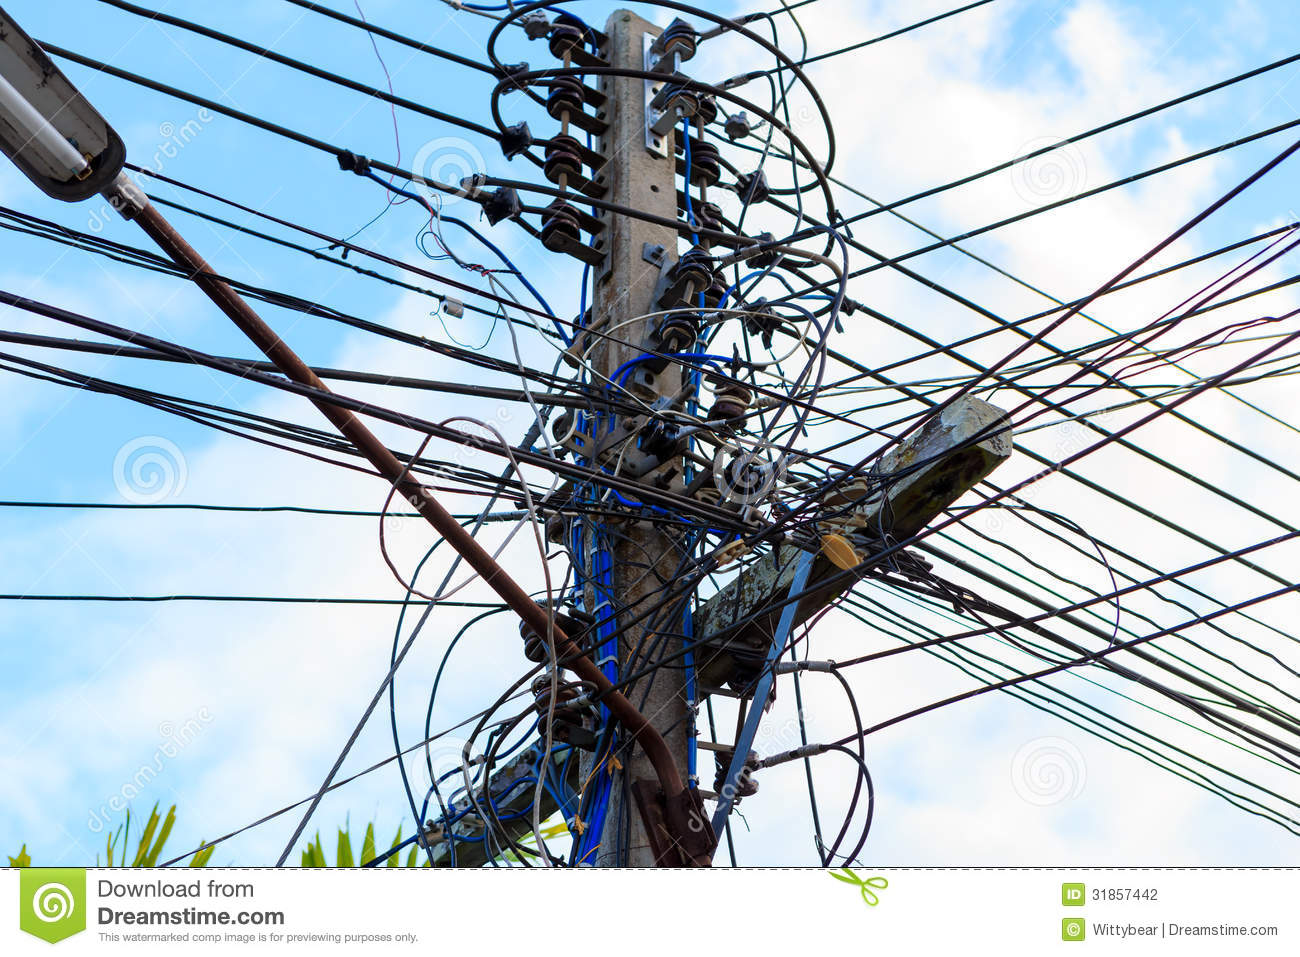 Electric Cable On Electricity Post Stock Photo - Image: 31857442